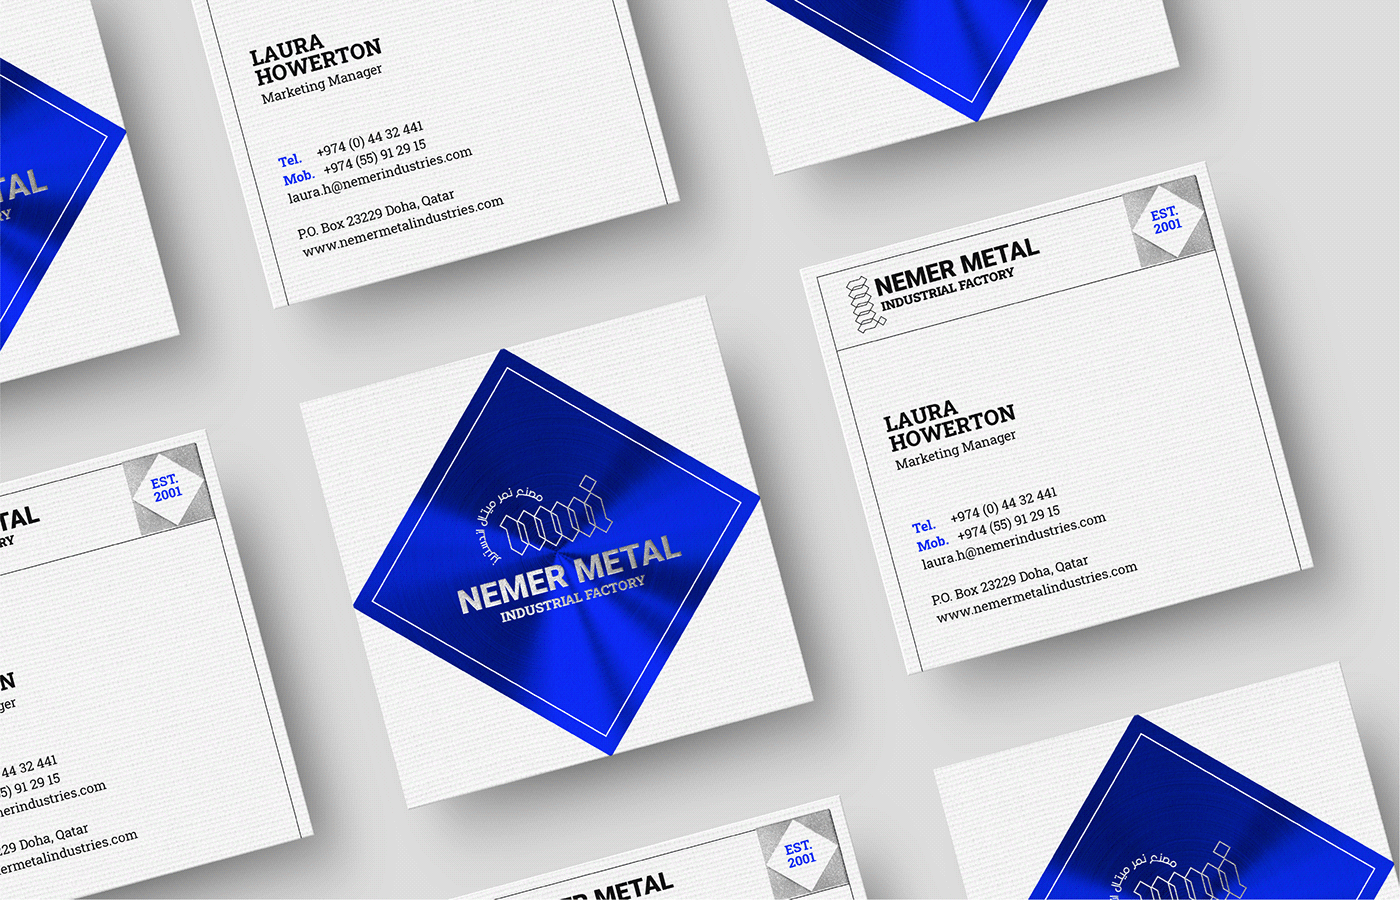 Nemer Metal Industries business card